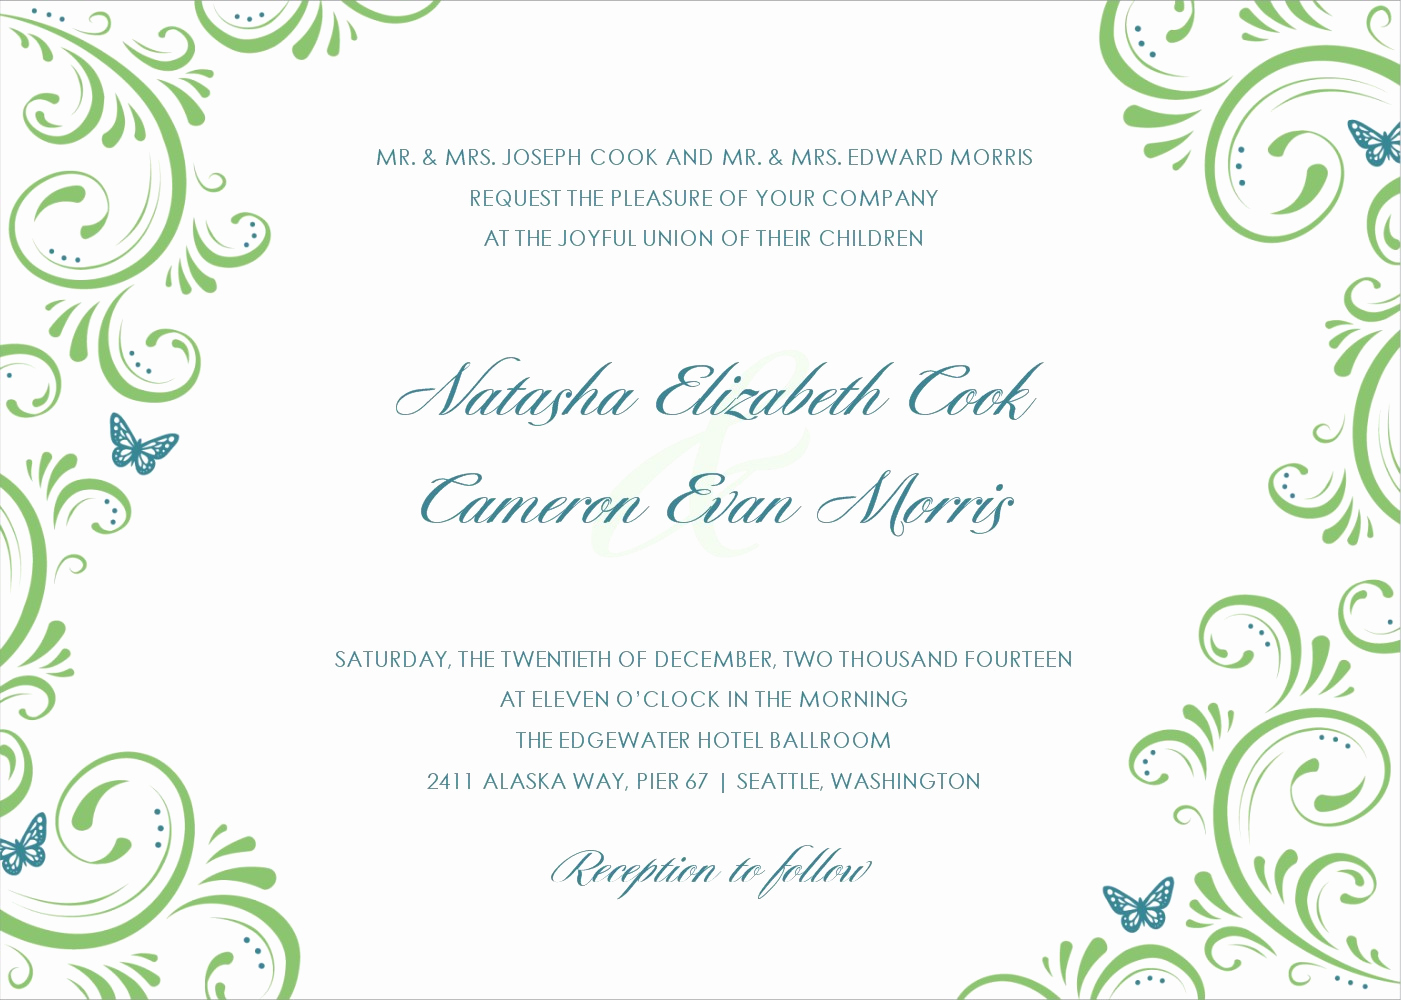 Wedding Invitation Design Templates Awesome Applying the Wedding Planning Templates